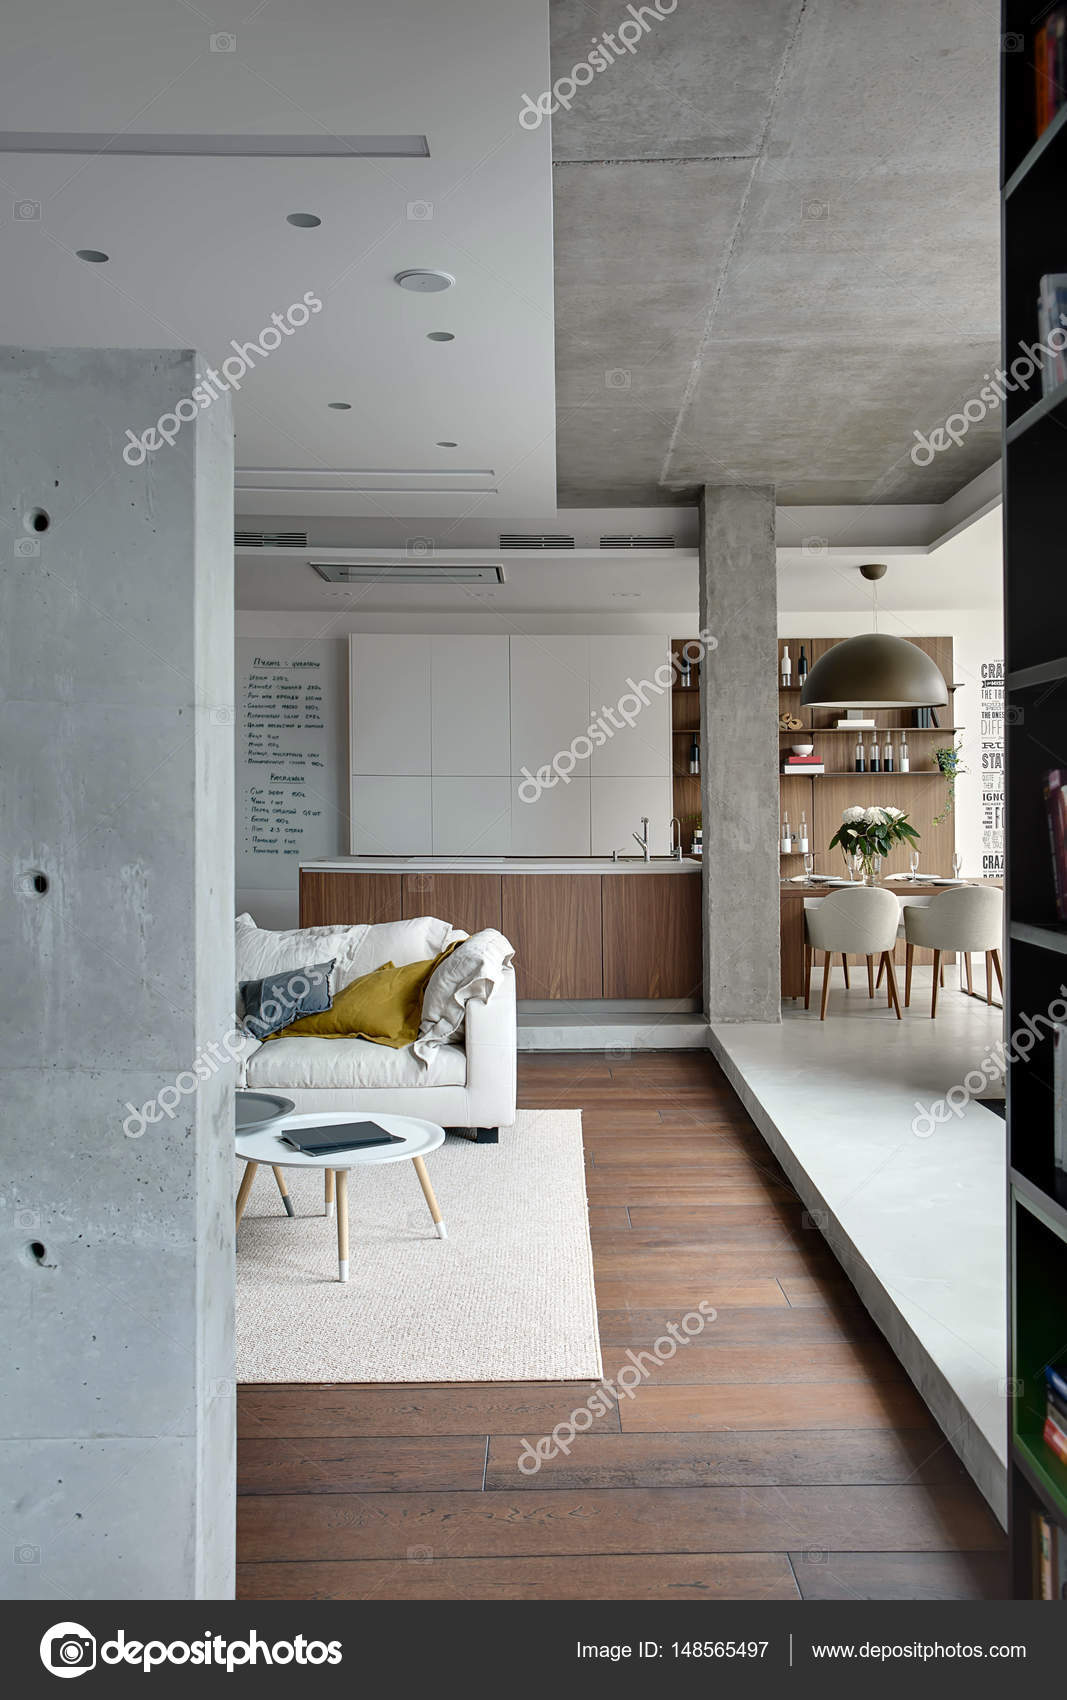 Studio-Apartment im Loft-Stil — Stockfoto © bezikus #148565497